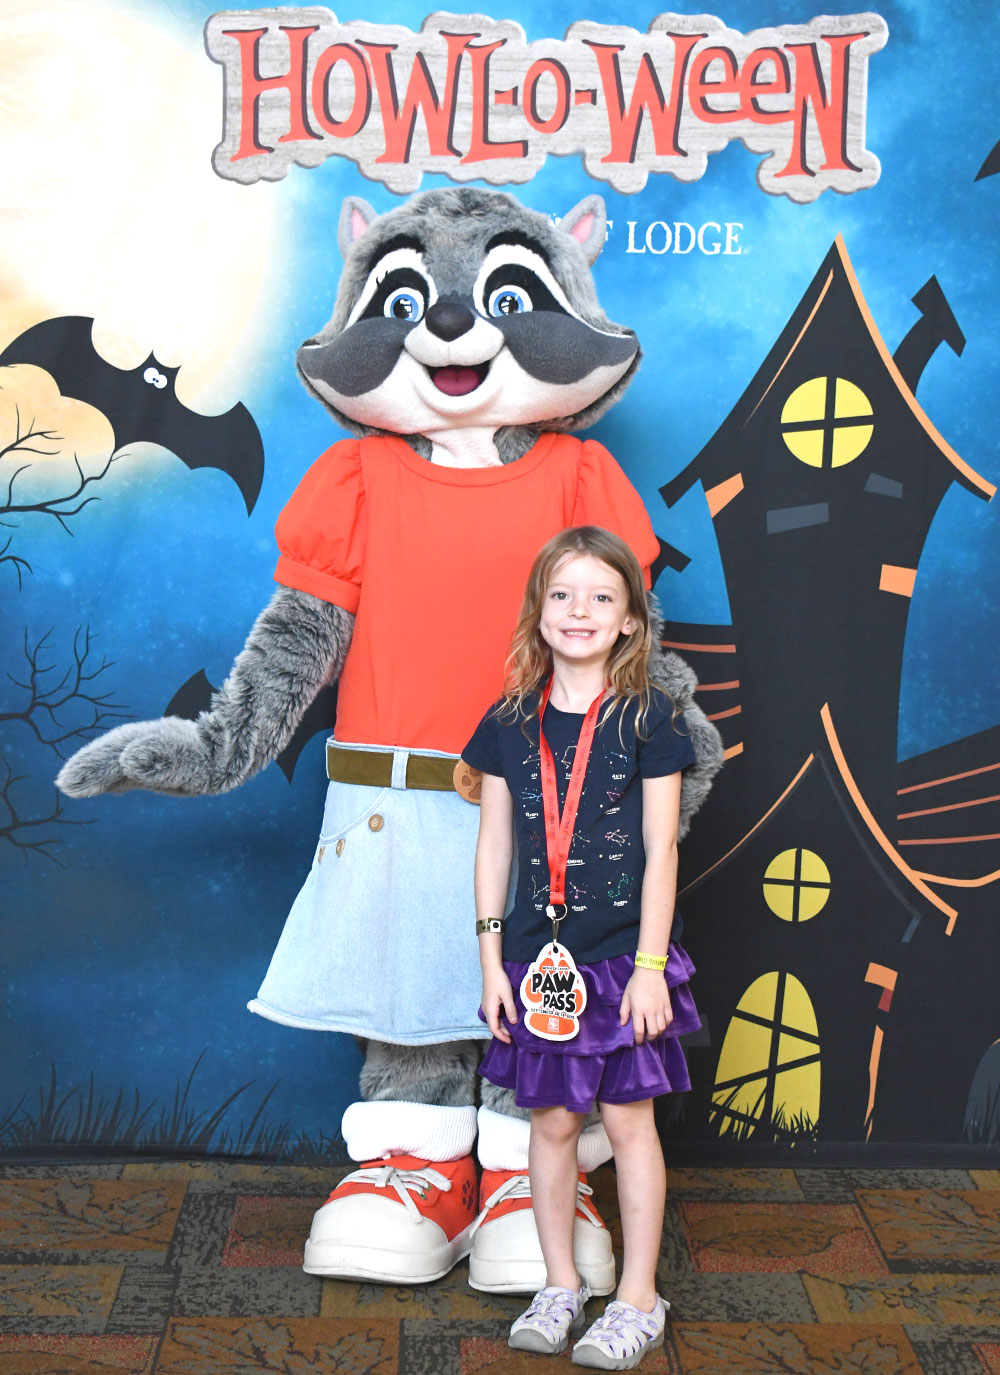 Family weekend at Great Wolf Lodge Howl-o-ween Celebration